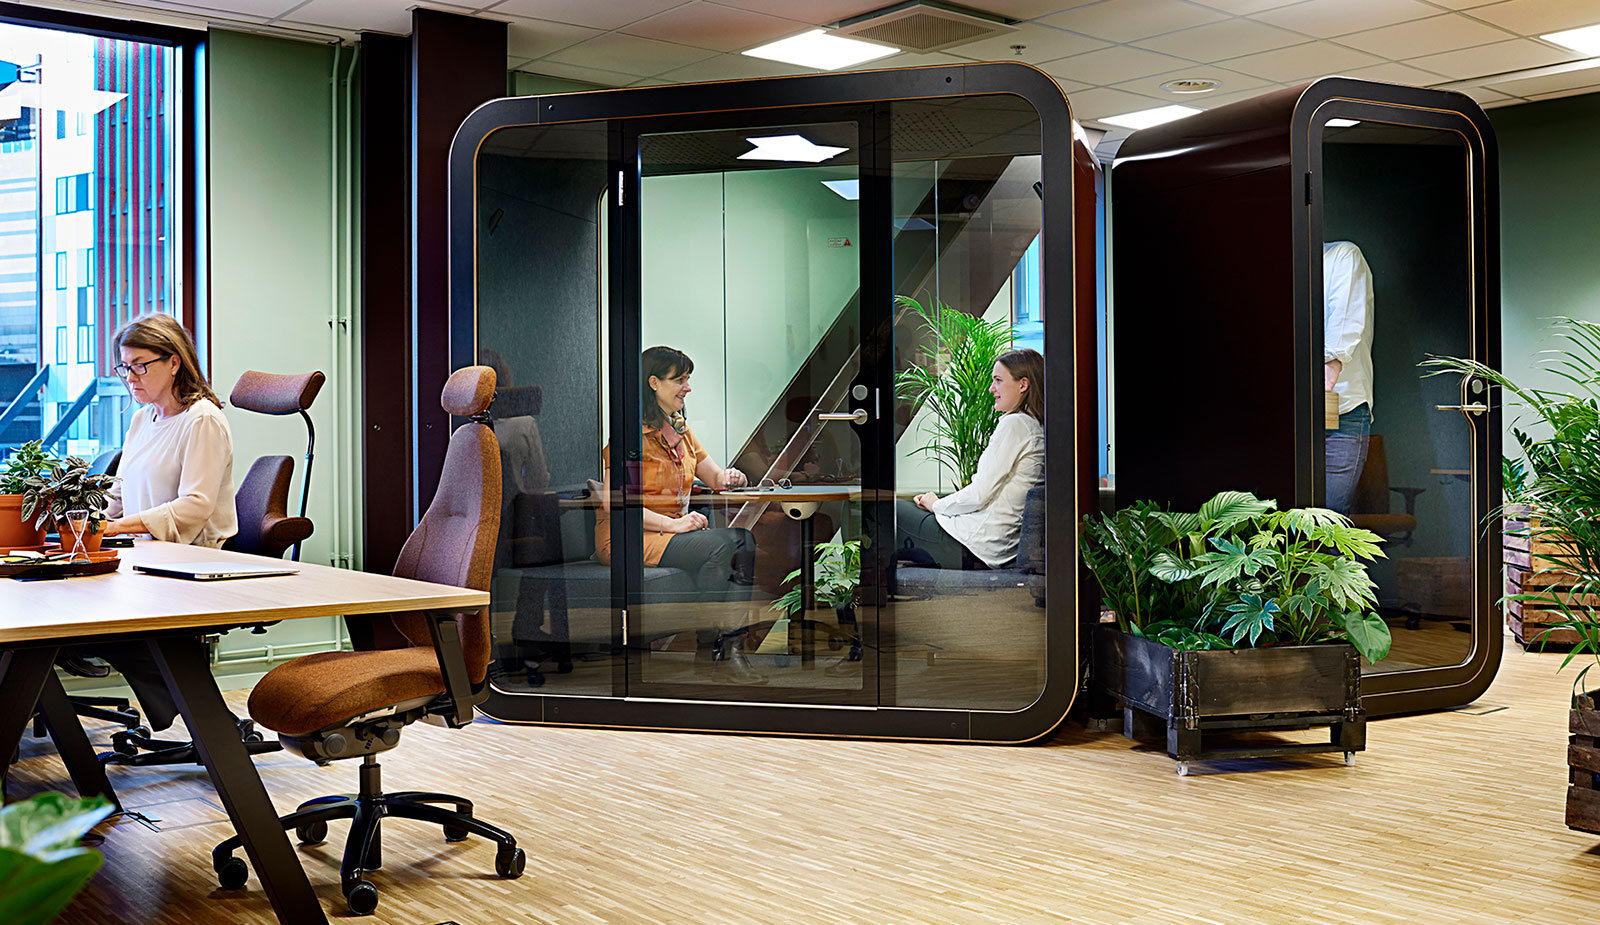 2 people inside a glass meeting booth in coworking office pop in work in sweden